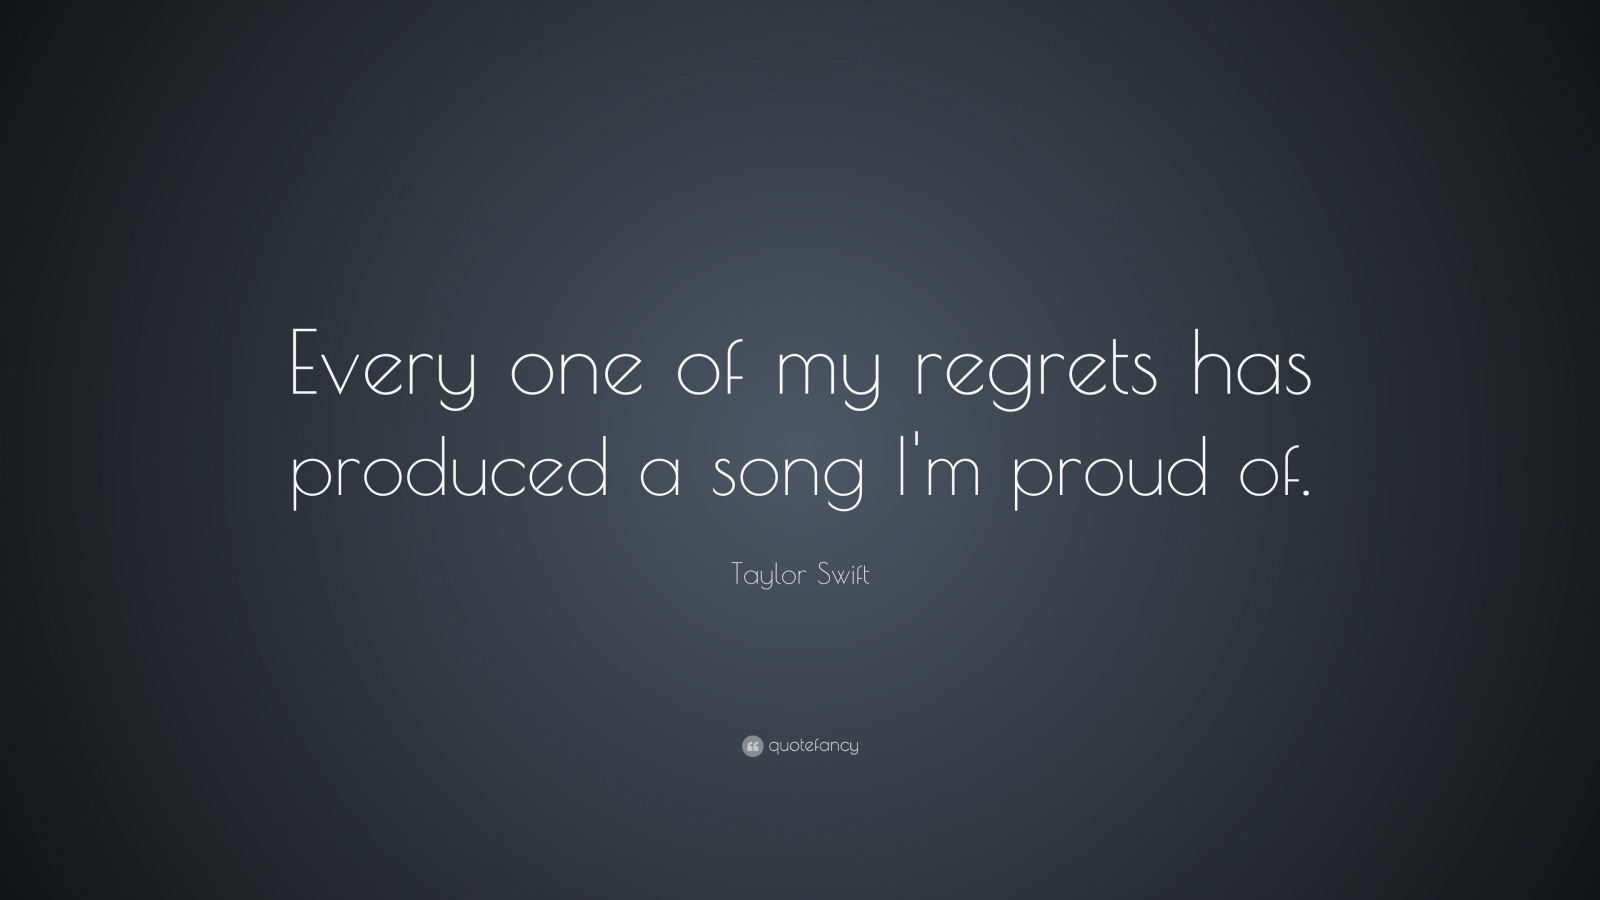 download song quotes wallpaper gallery